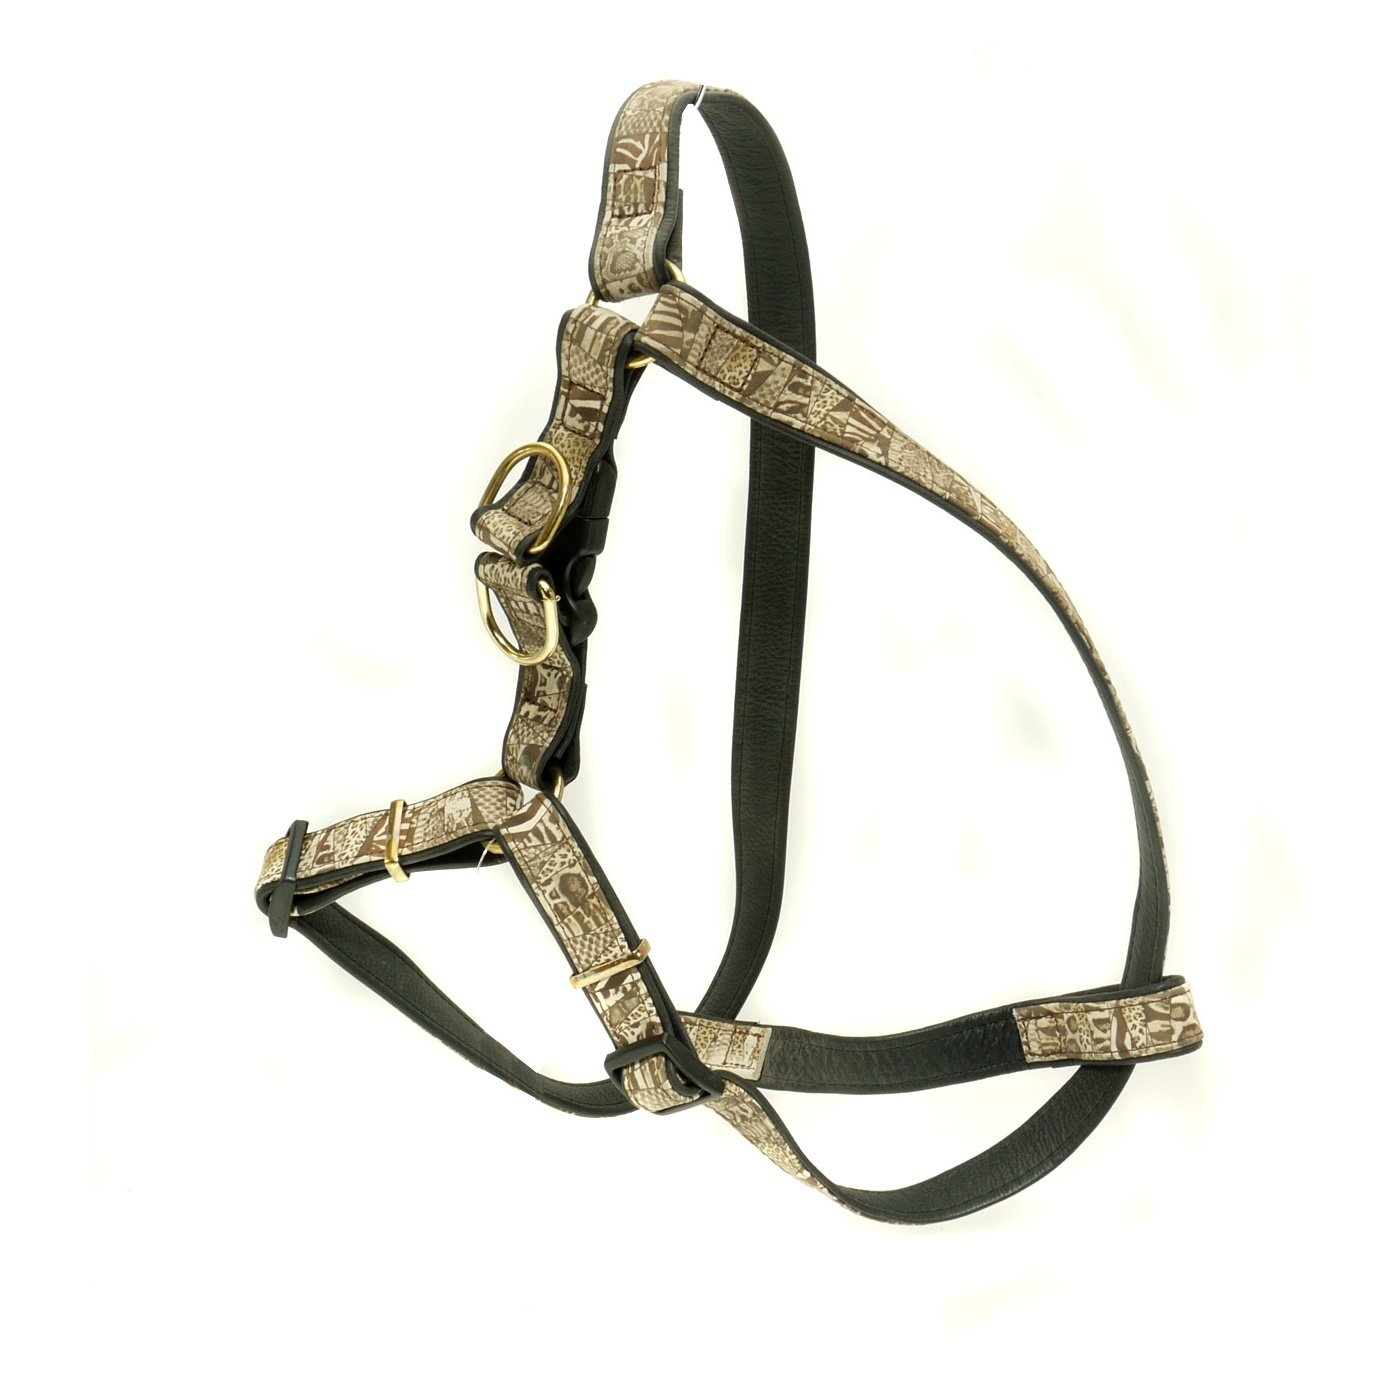 Black Brown One Size Black Brown One Size Vital Pet Products Yaquarete Adjustable Dog Harness (One Size) (Black Brown)